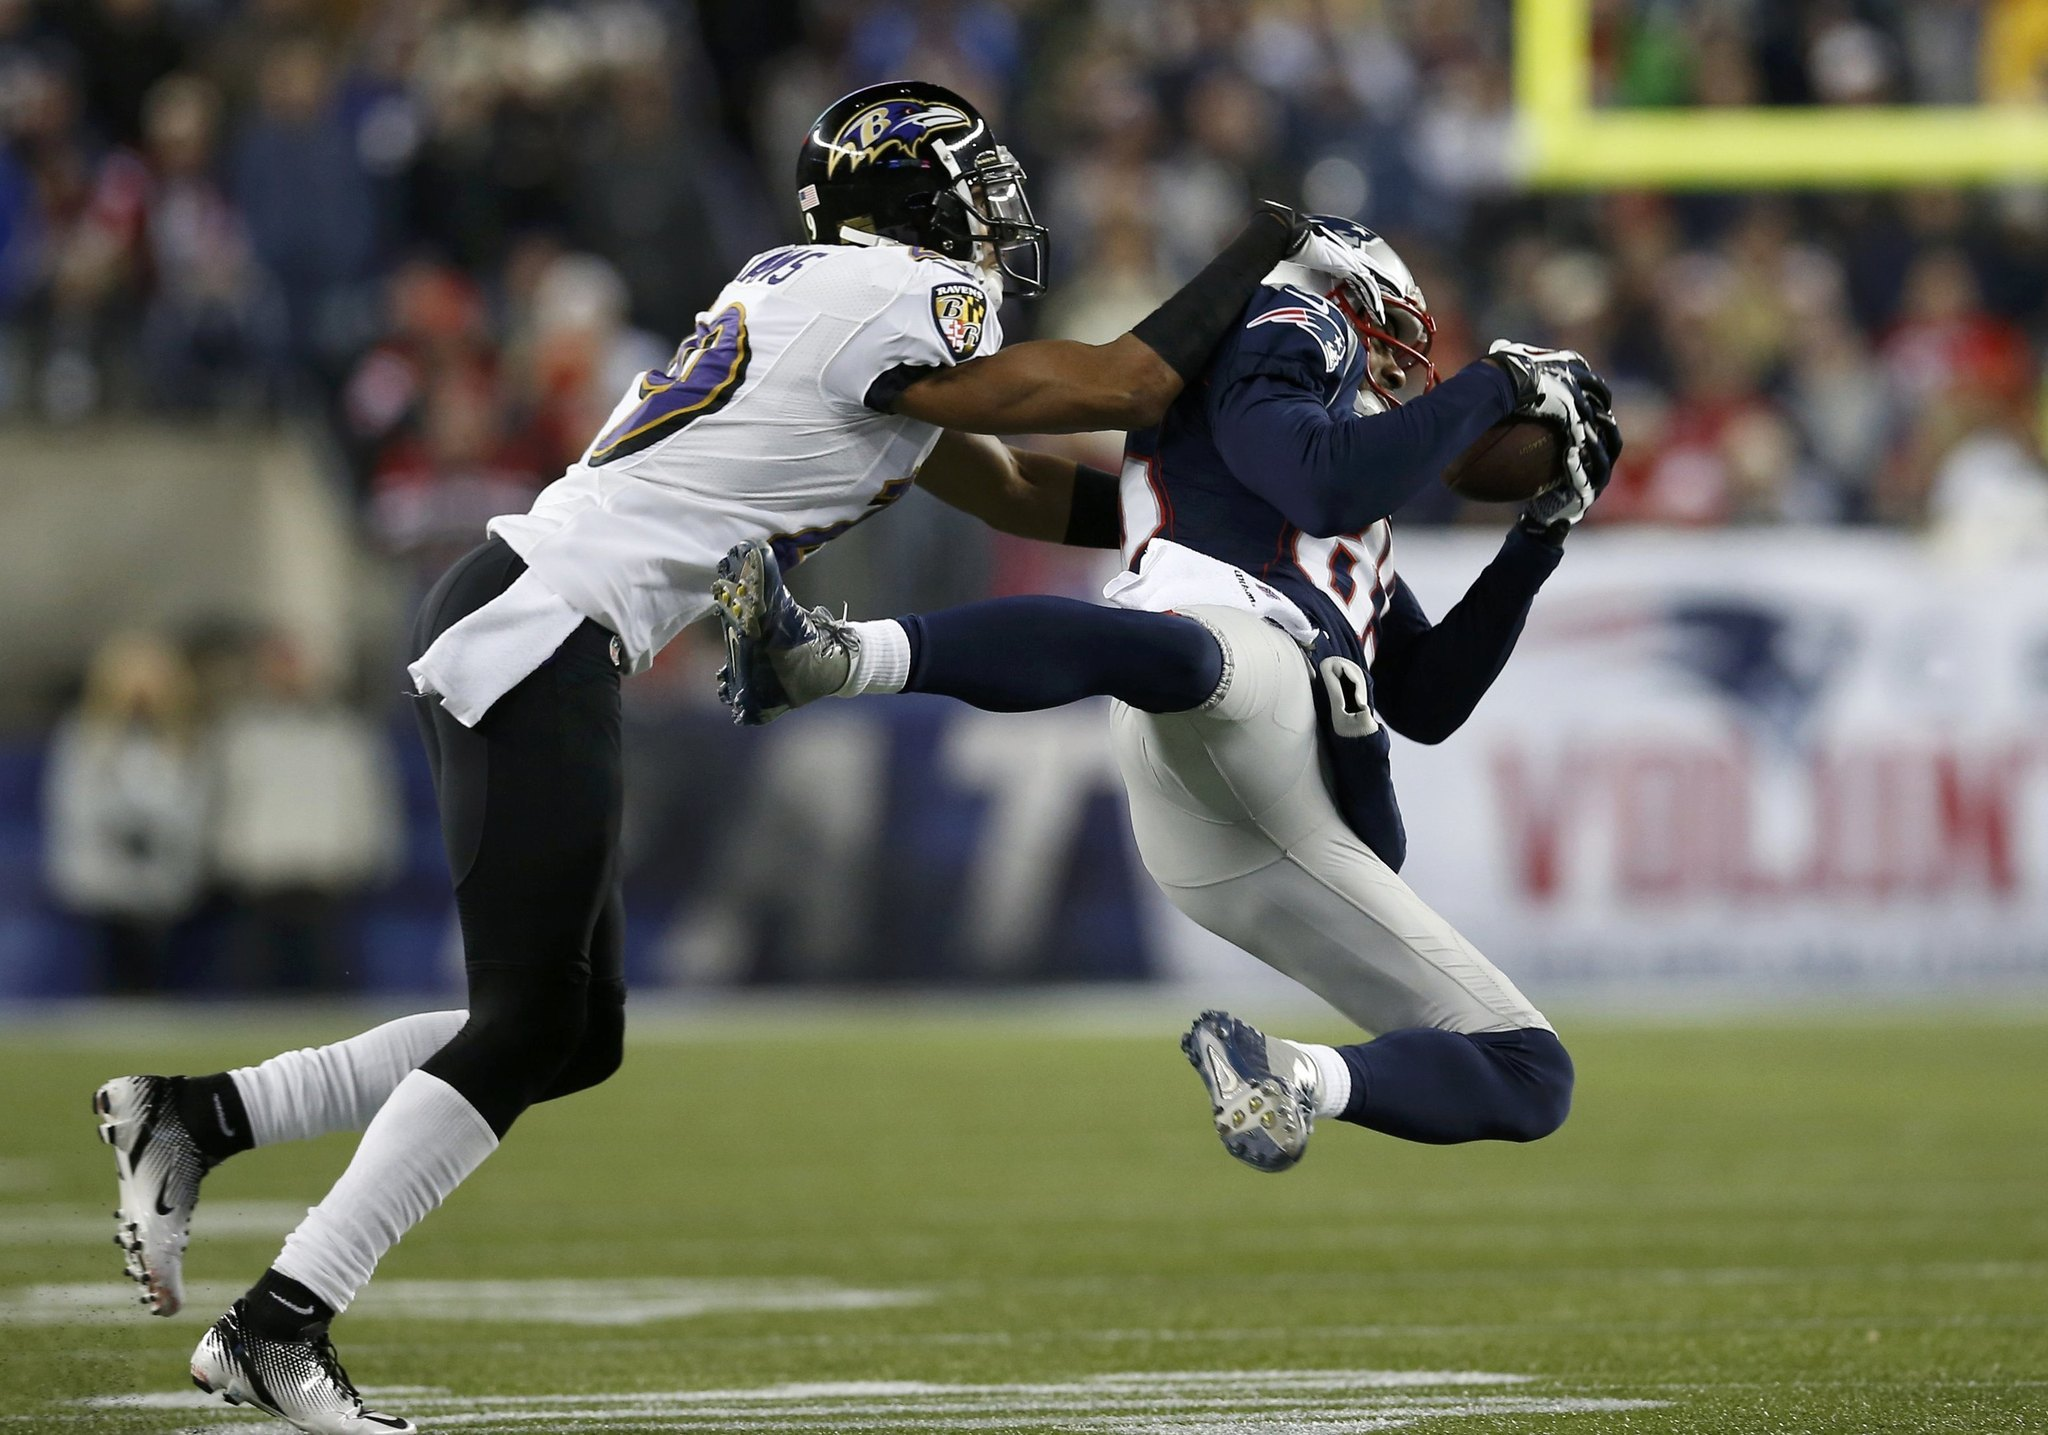 The Patriots' Brandon Lloyd, right, makes a catch in the first quarter against Ravens cornerback Cary Williams in the first half of the AFC championship game.